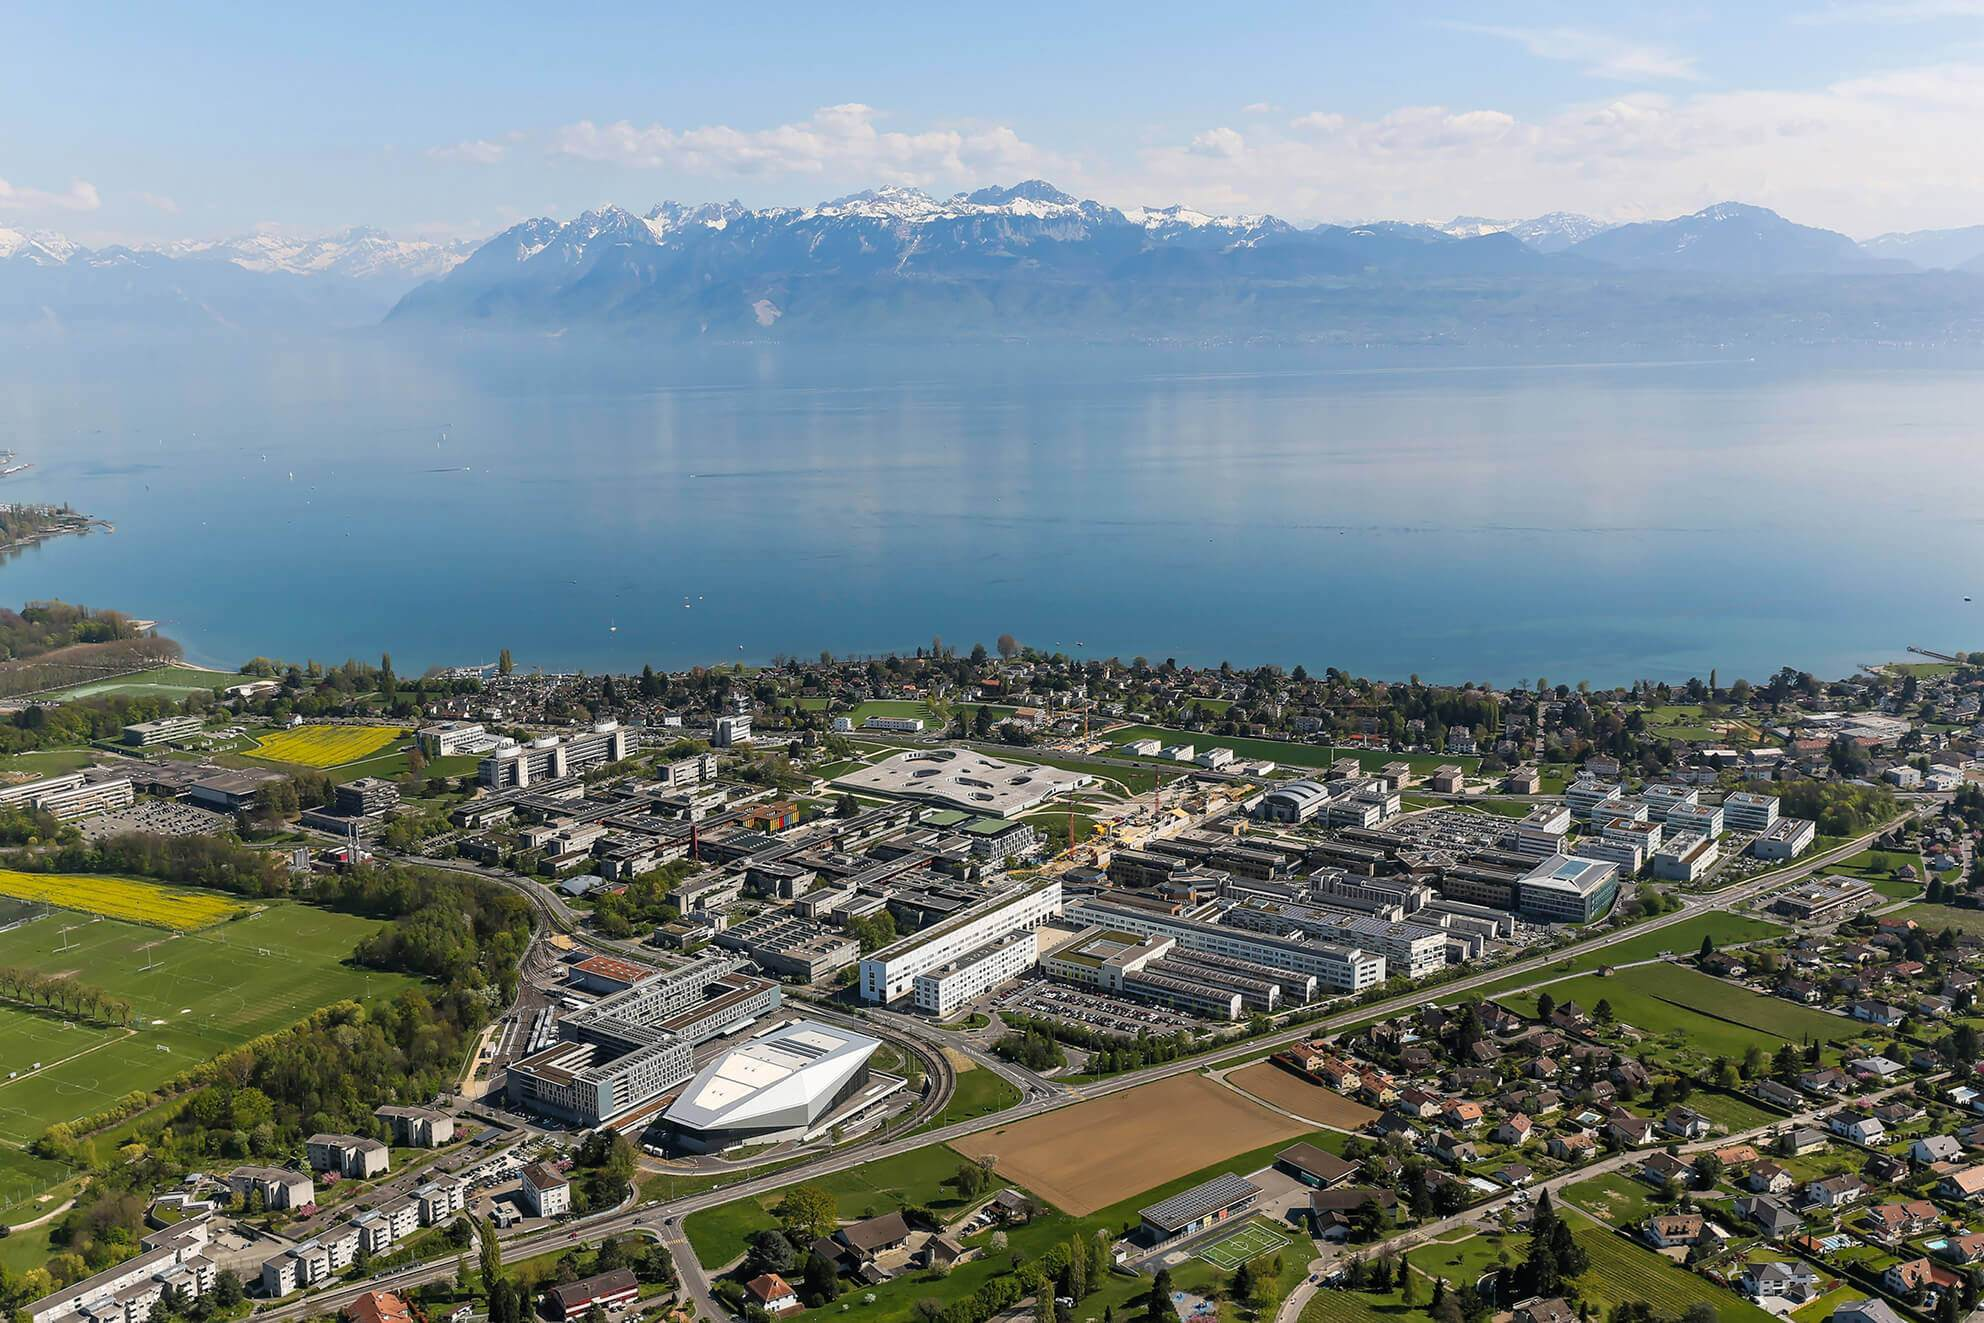 LauzHack is a student-run hackathon at EPFL on the shores of Lake Geneva.